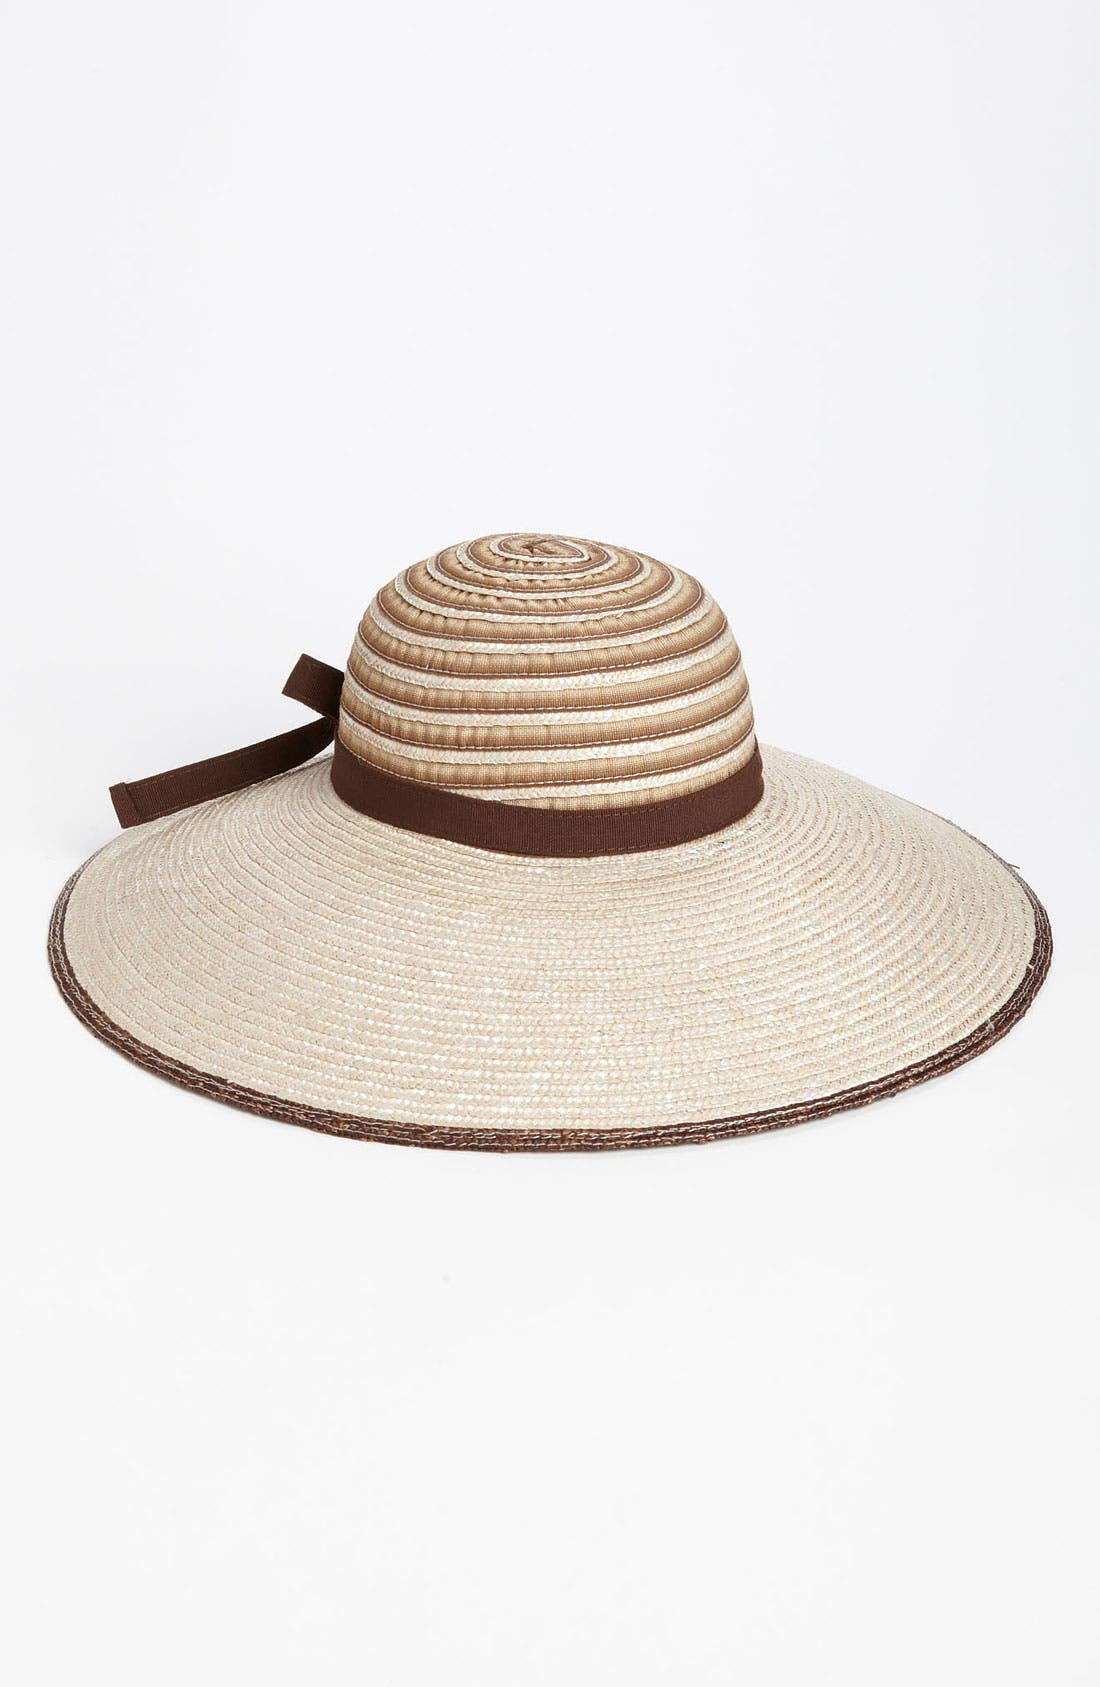 Main Image - Nordstrom Dégradé Ribbon Sun Hat